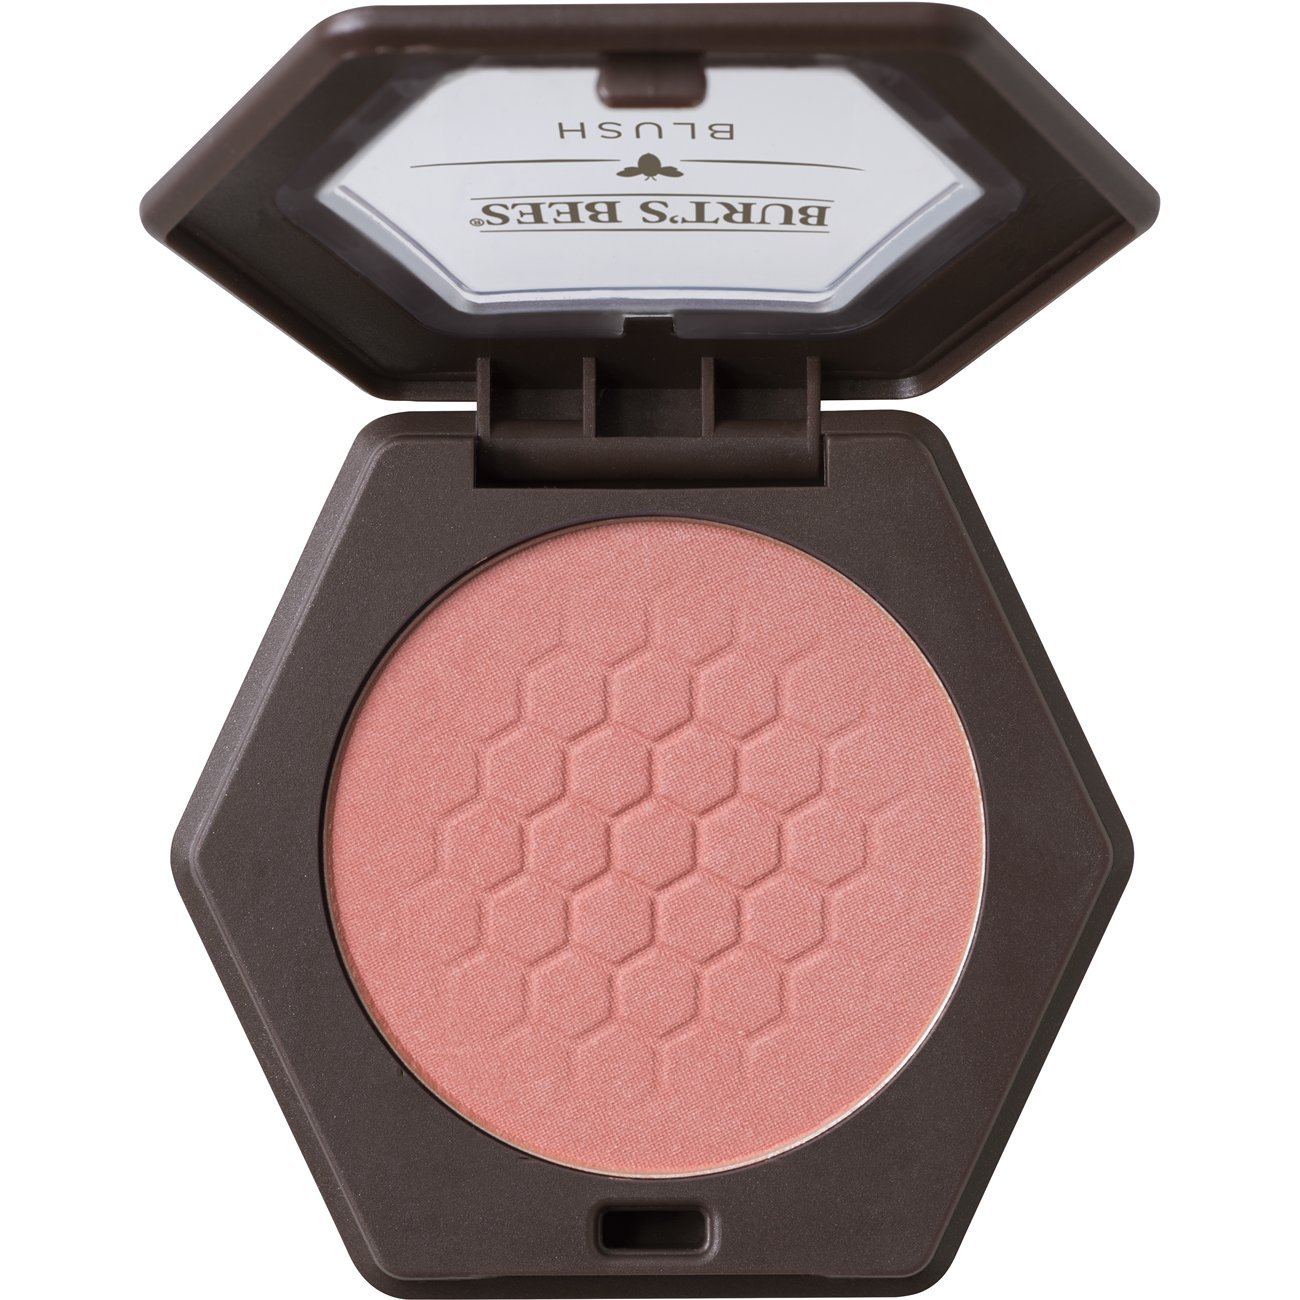 Burt's Bees 100% Natural Blush With Vitamin E